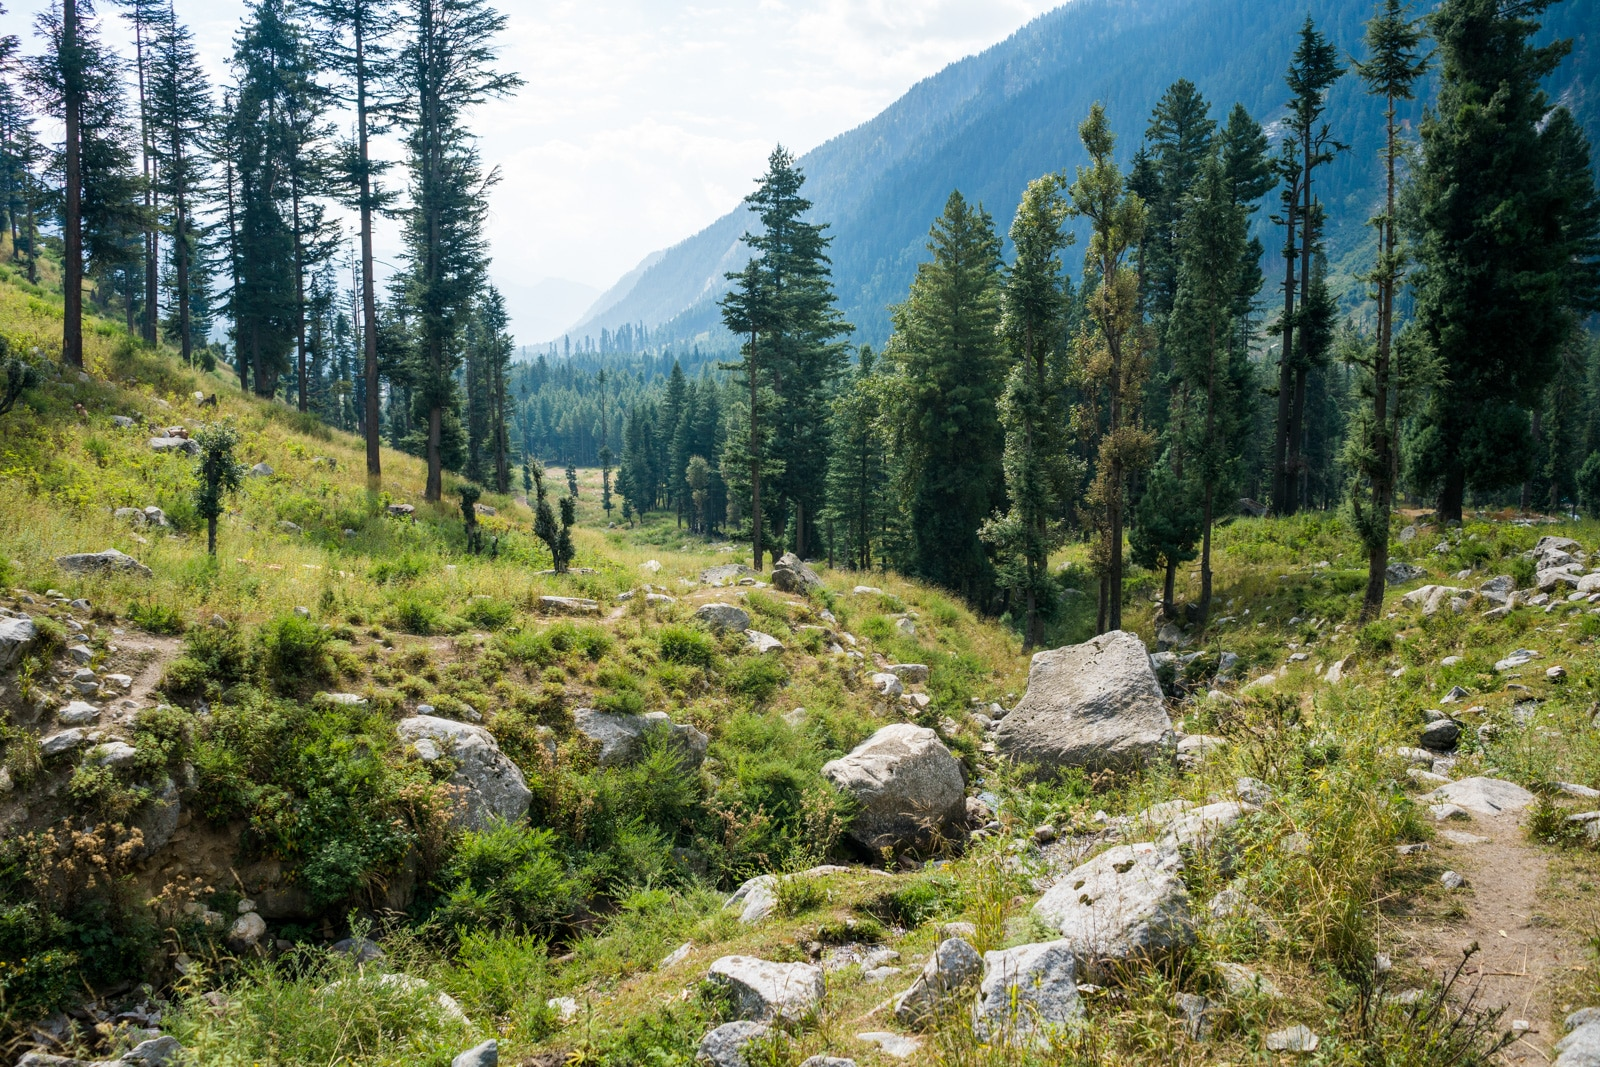 How to get from Swat to Kumrat to Chitral by public transport - Landscape in Kumrat Valley - Lost With Purpose travel blog